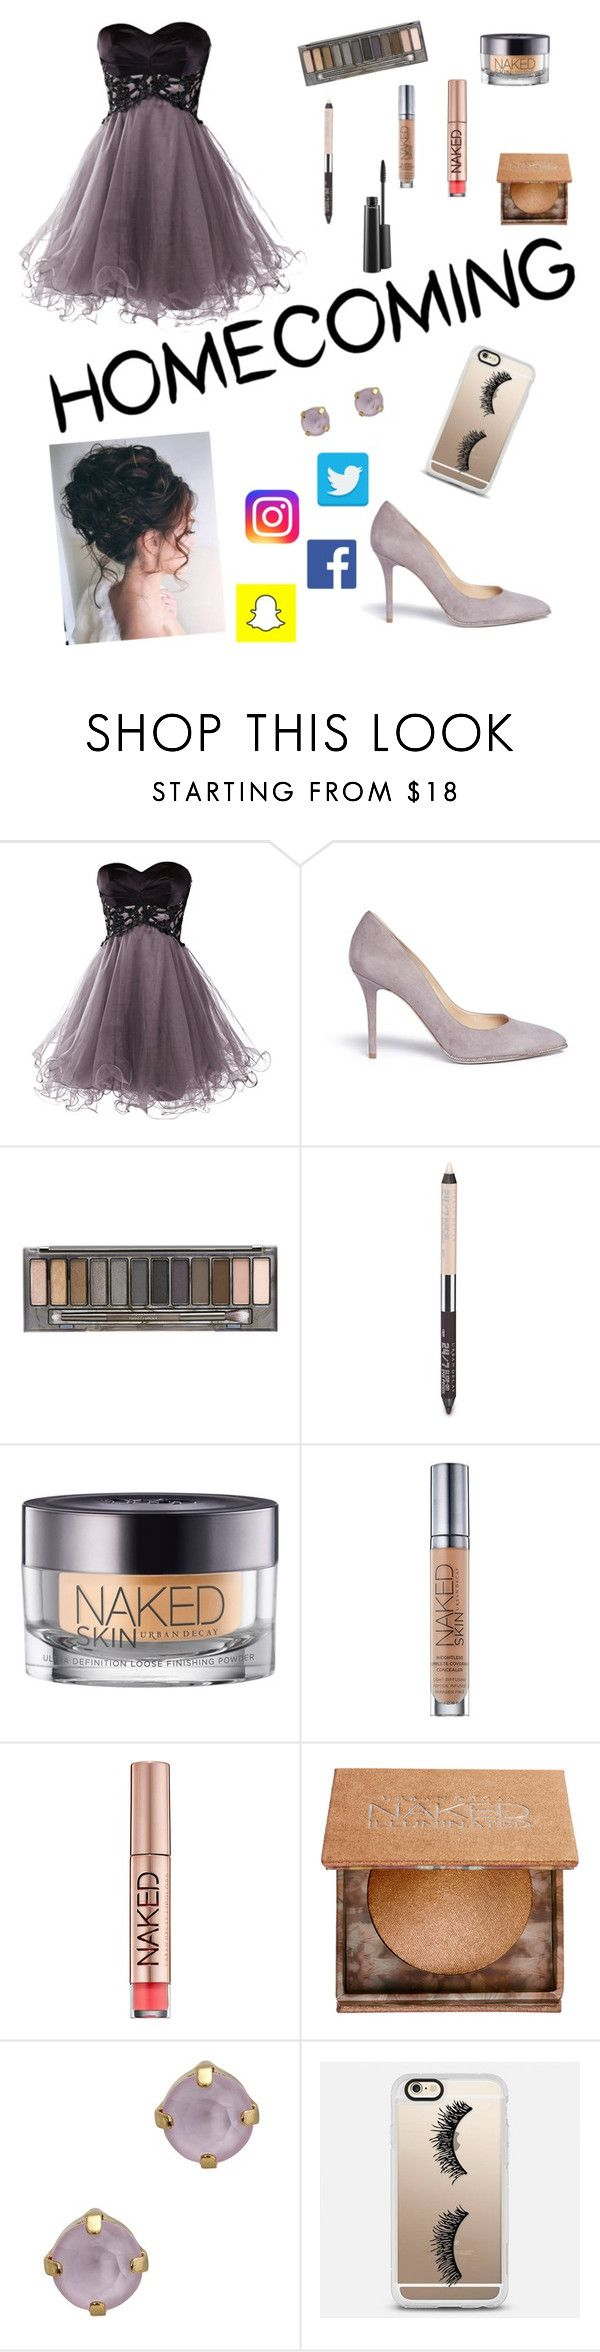 """""""Cause hoco is in like 2 weeks. 》》"""" by dailydaisy1 ❤ liked on Polyvore featuring Rene, Urban Decay, John & Pearl, Casetify and MAC Cosmetics"""